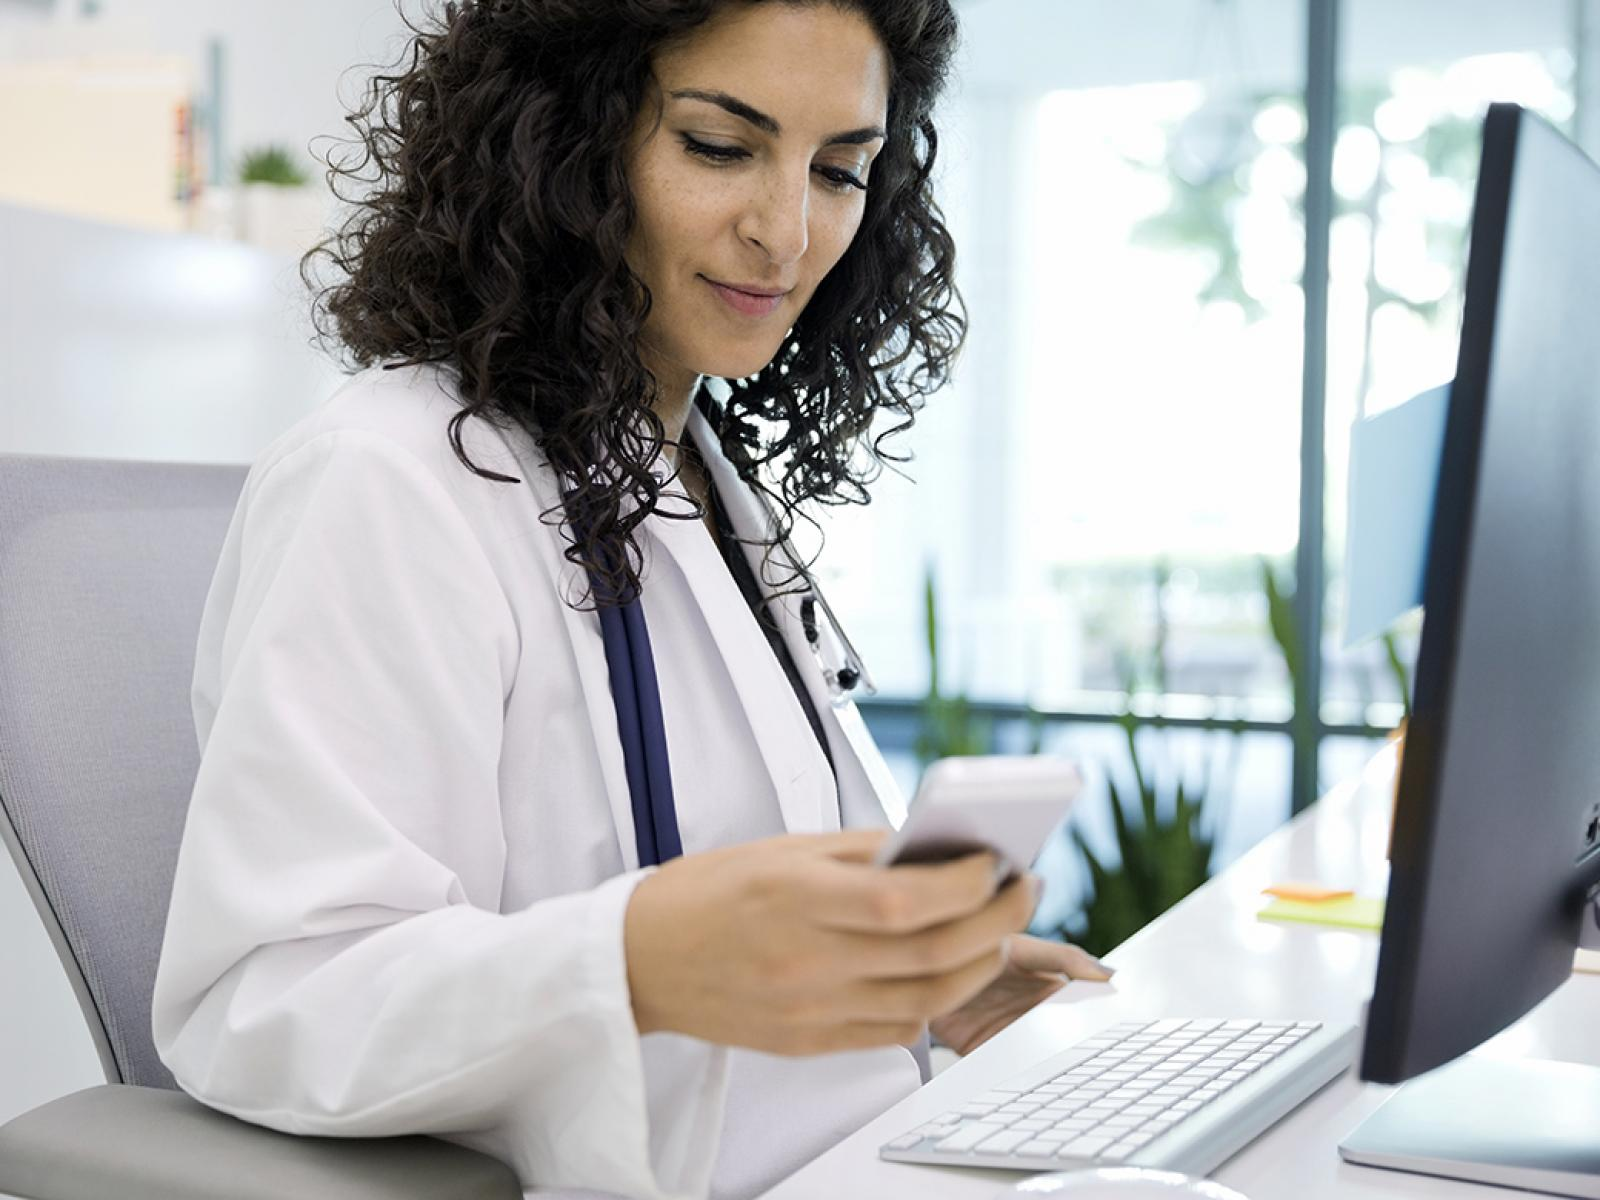 Medical professional reviews information on cell phone.